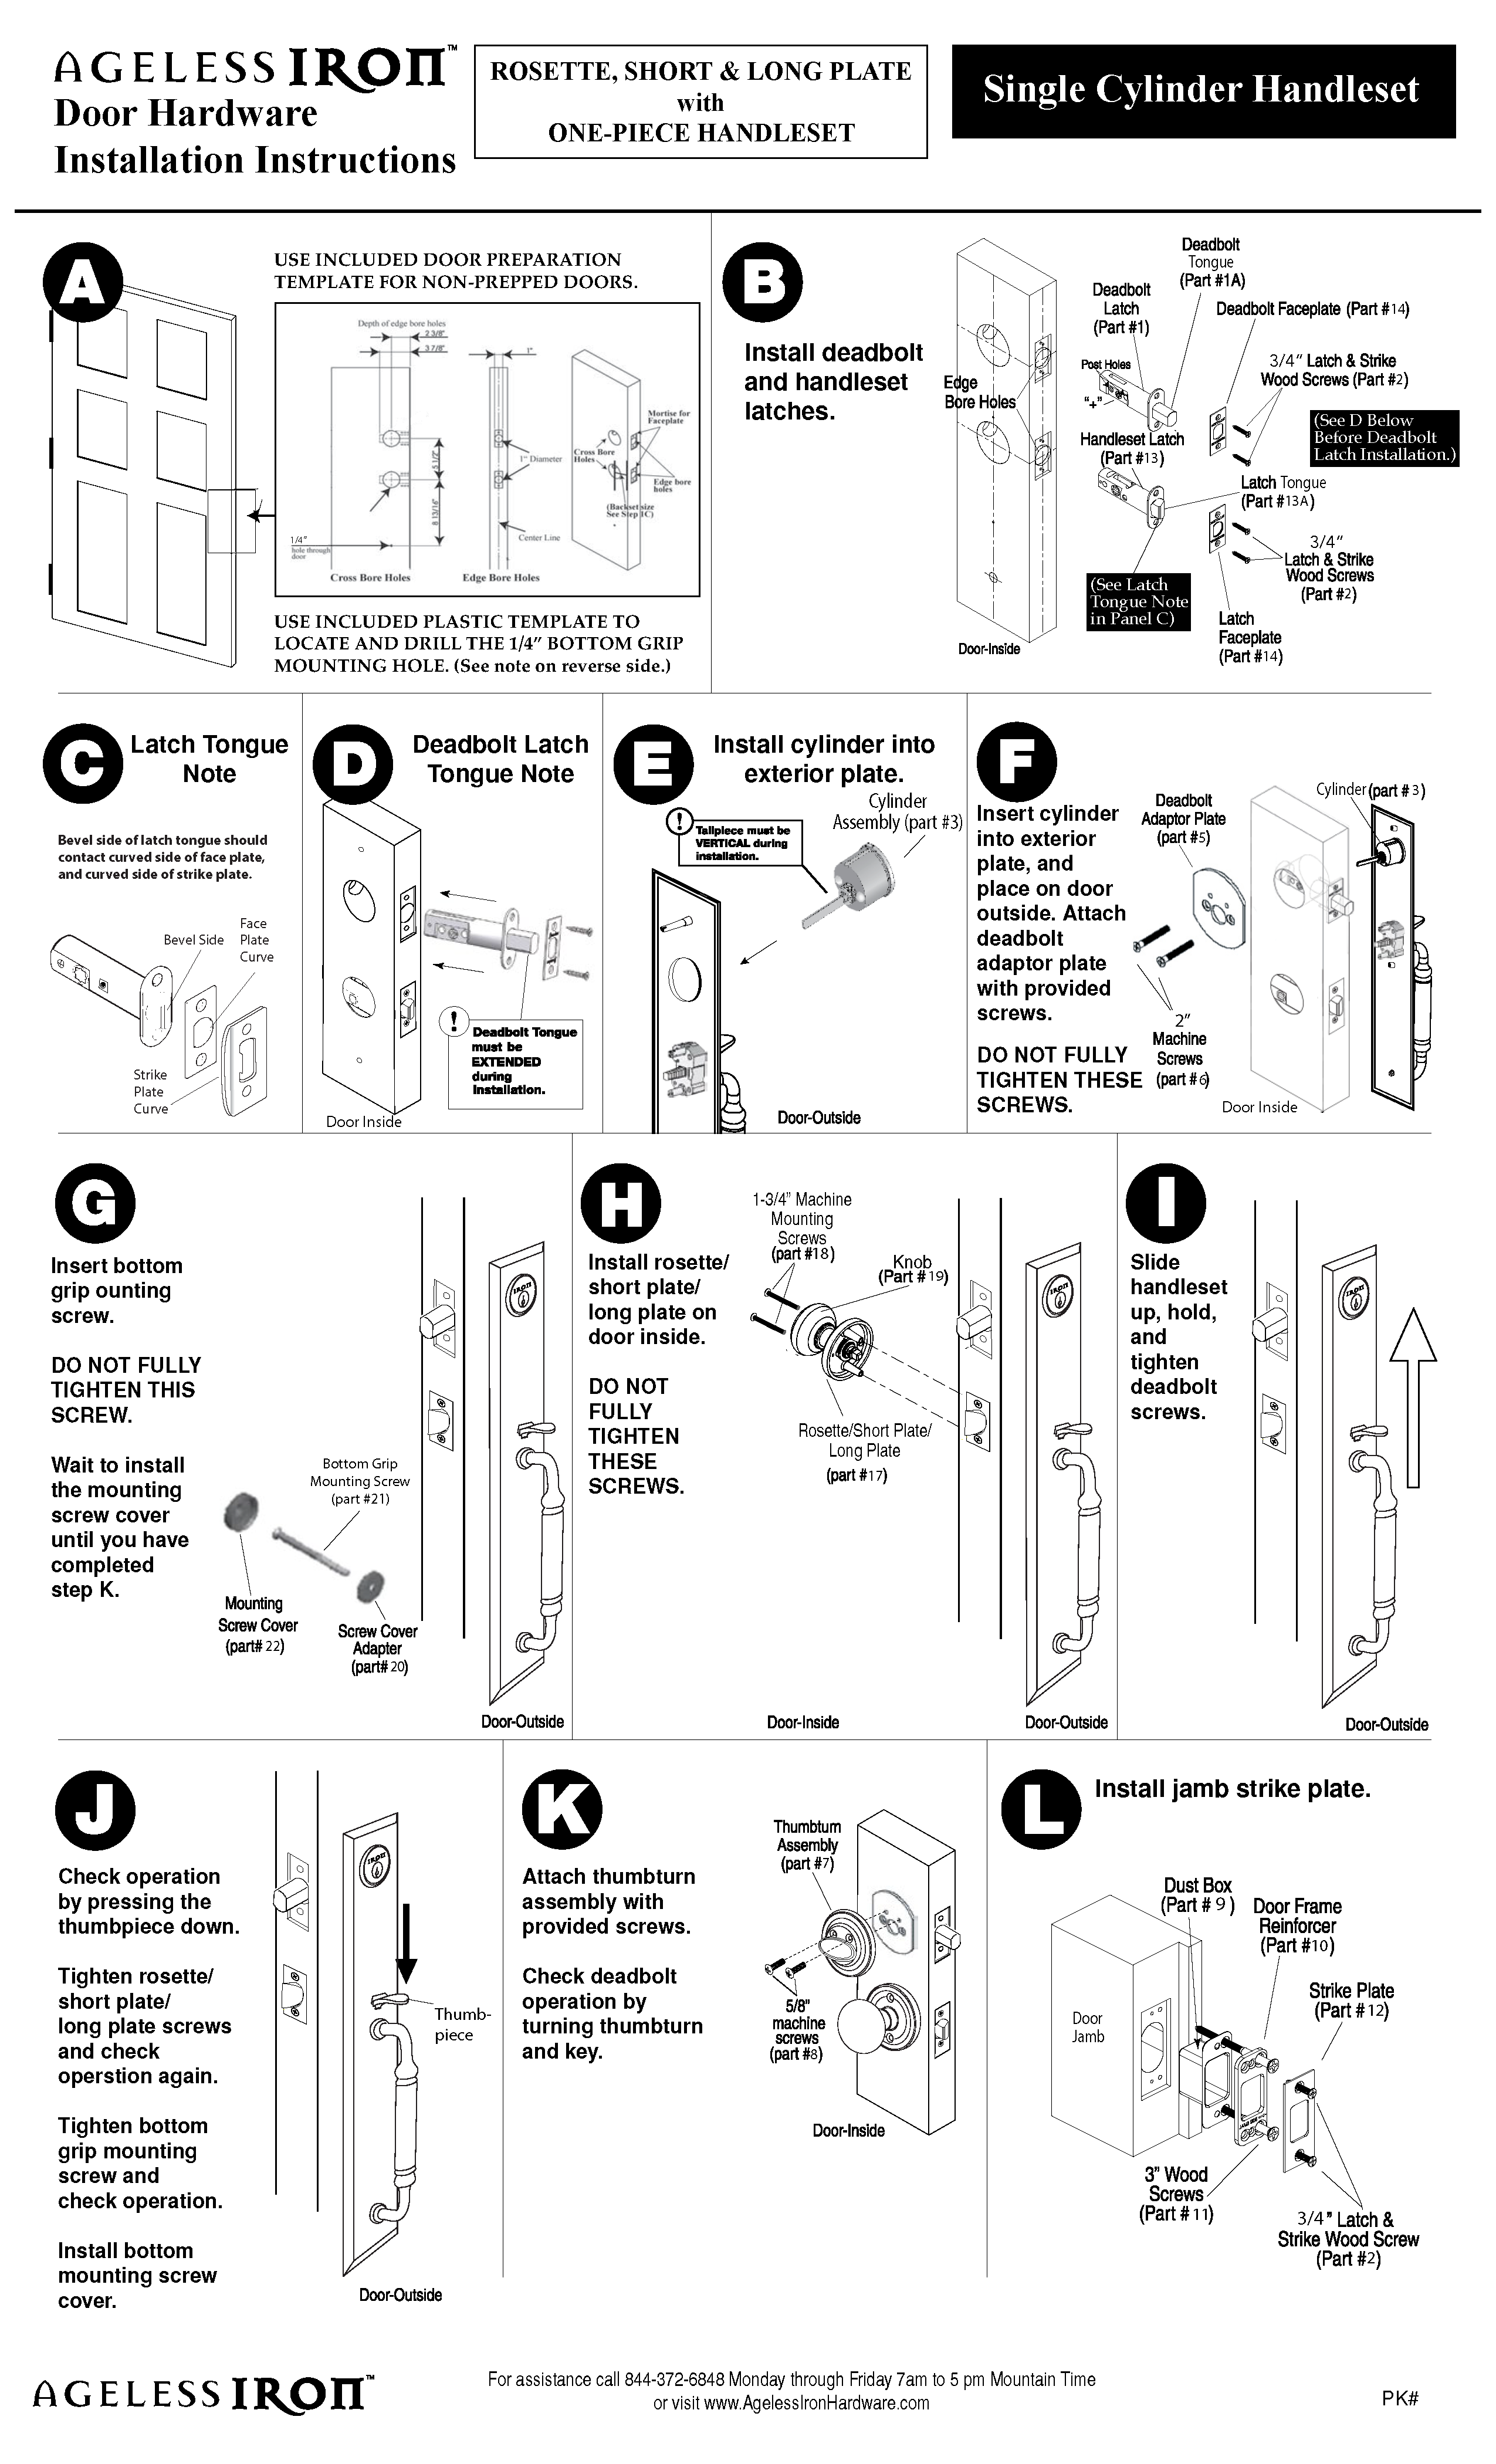 One Piece Entry Handleset Instructions